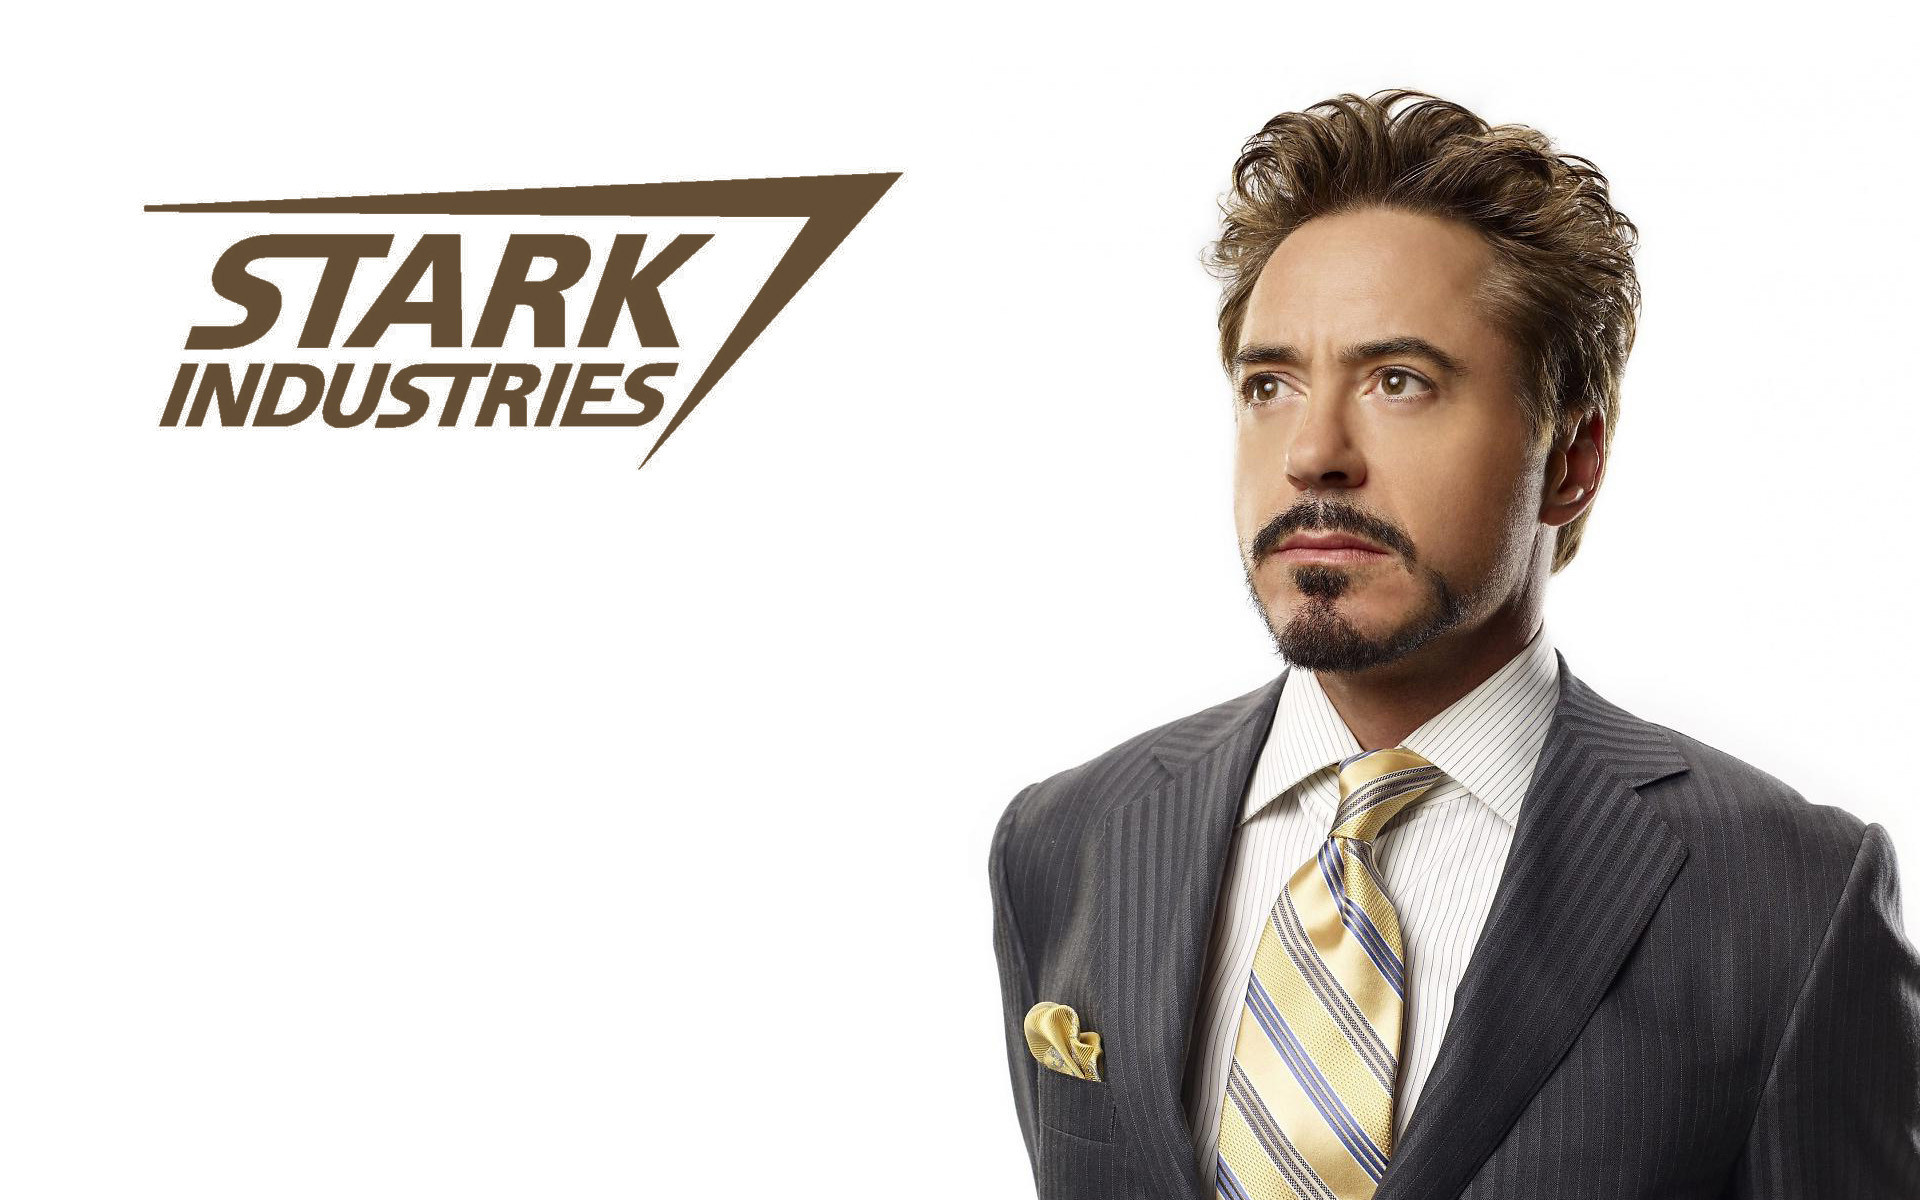 Tony Stark Wallpapers (57+ Images